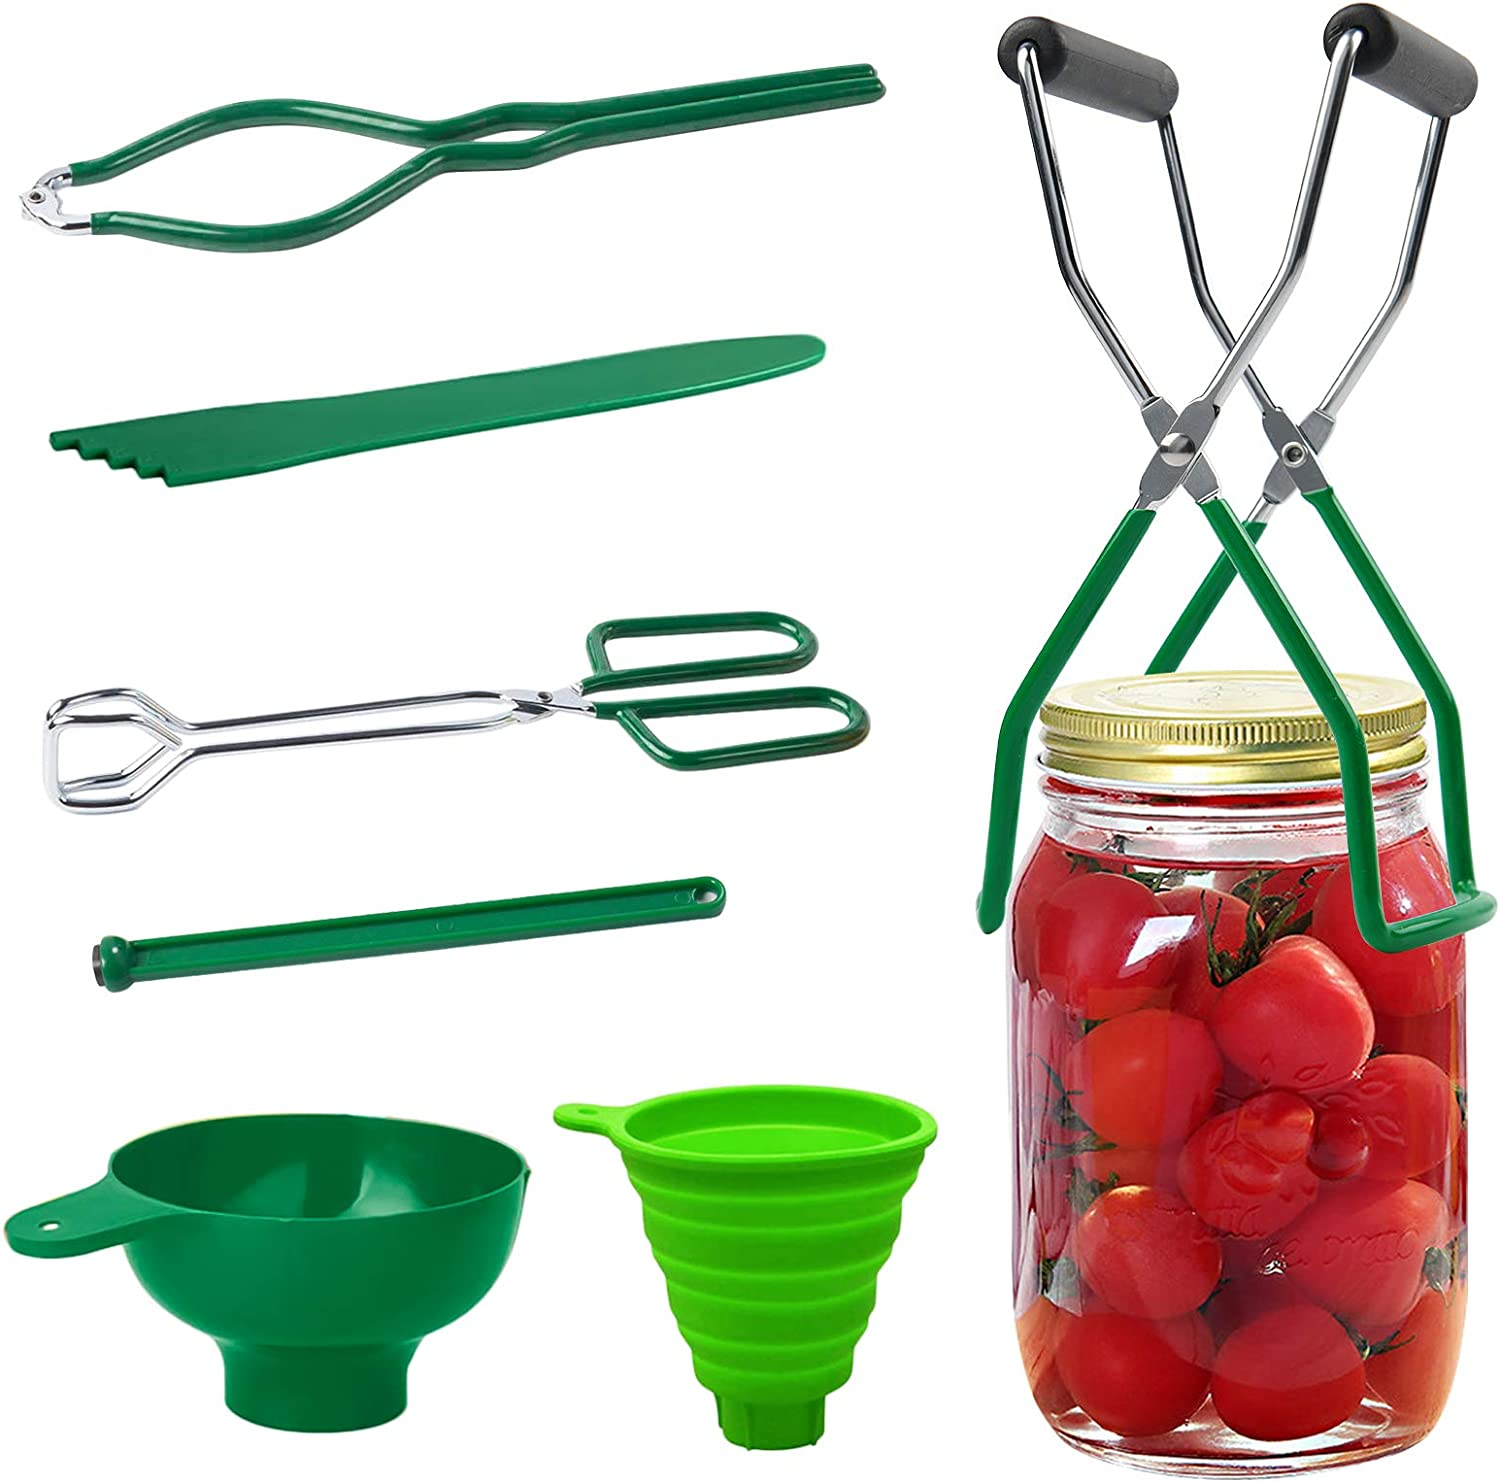 Guilian 7 Piece Canning Kit Canning Supplies Set Canning Jar Lifter with Grip Handles, Stainless Steel Large Canning for Home Ca